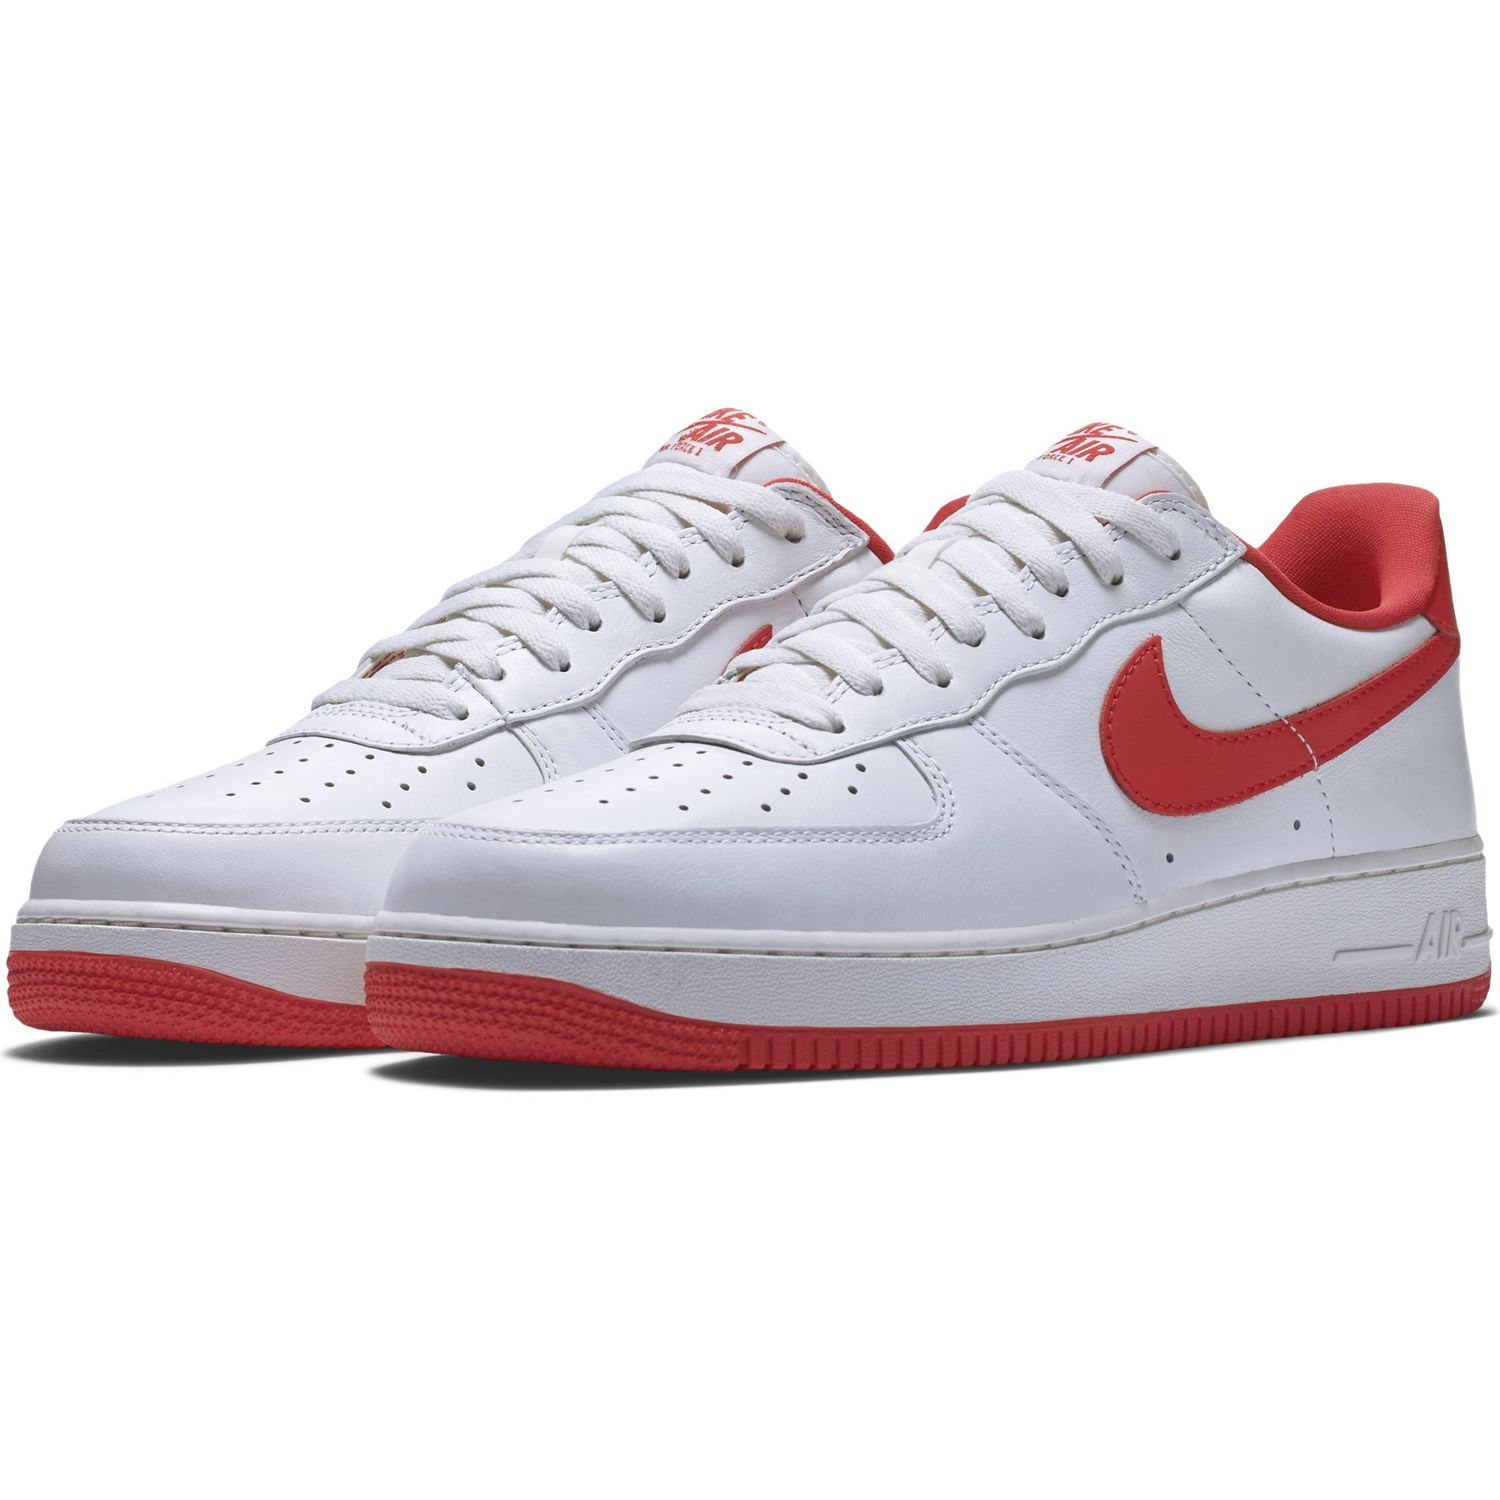 Nike Air Force 1 Low Retro Summit White/University Red 845053 100